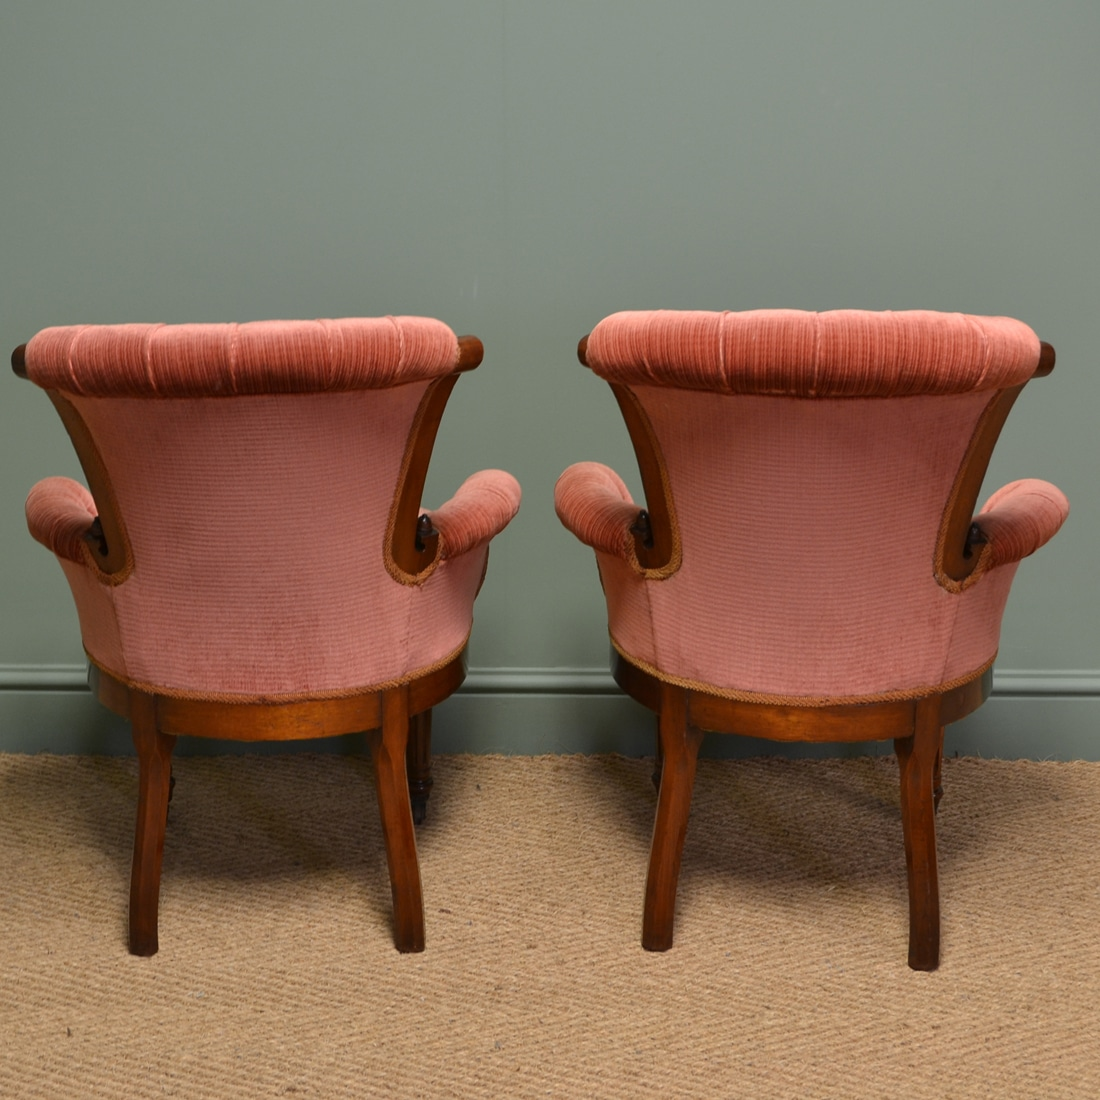 Old Fashioned Bedroom Chairs Stunning Pair Of Victorian Figured Walnut Antique Bedroom Side